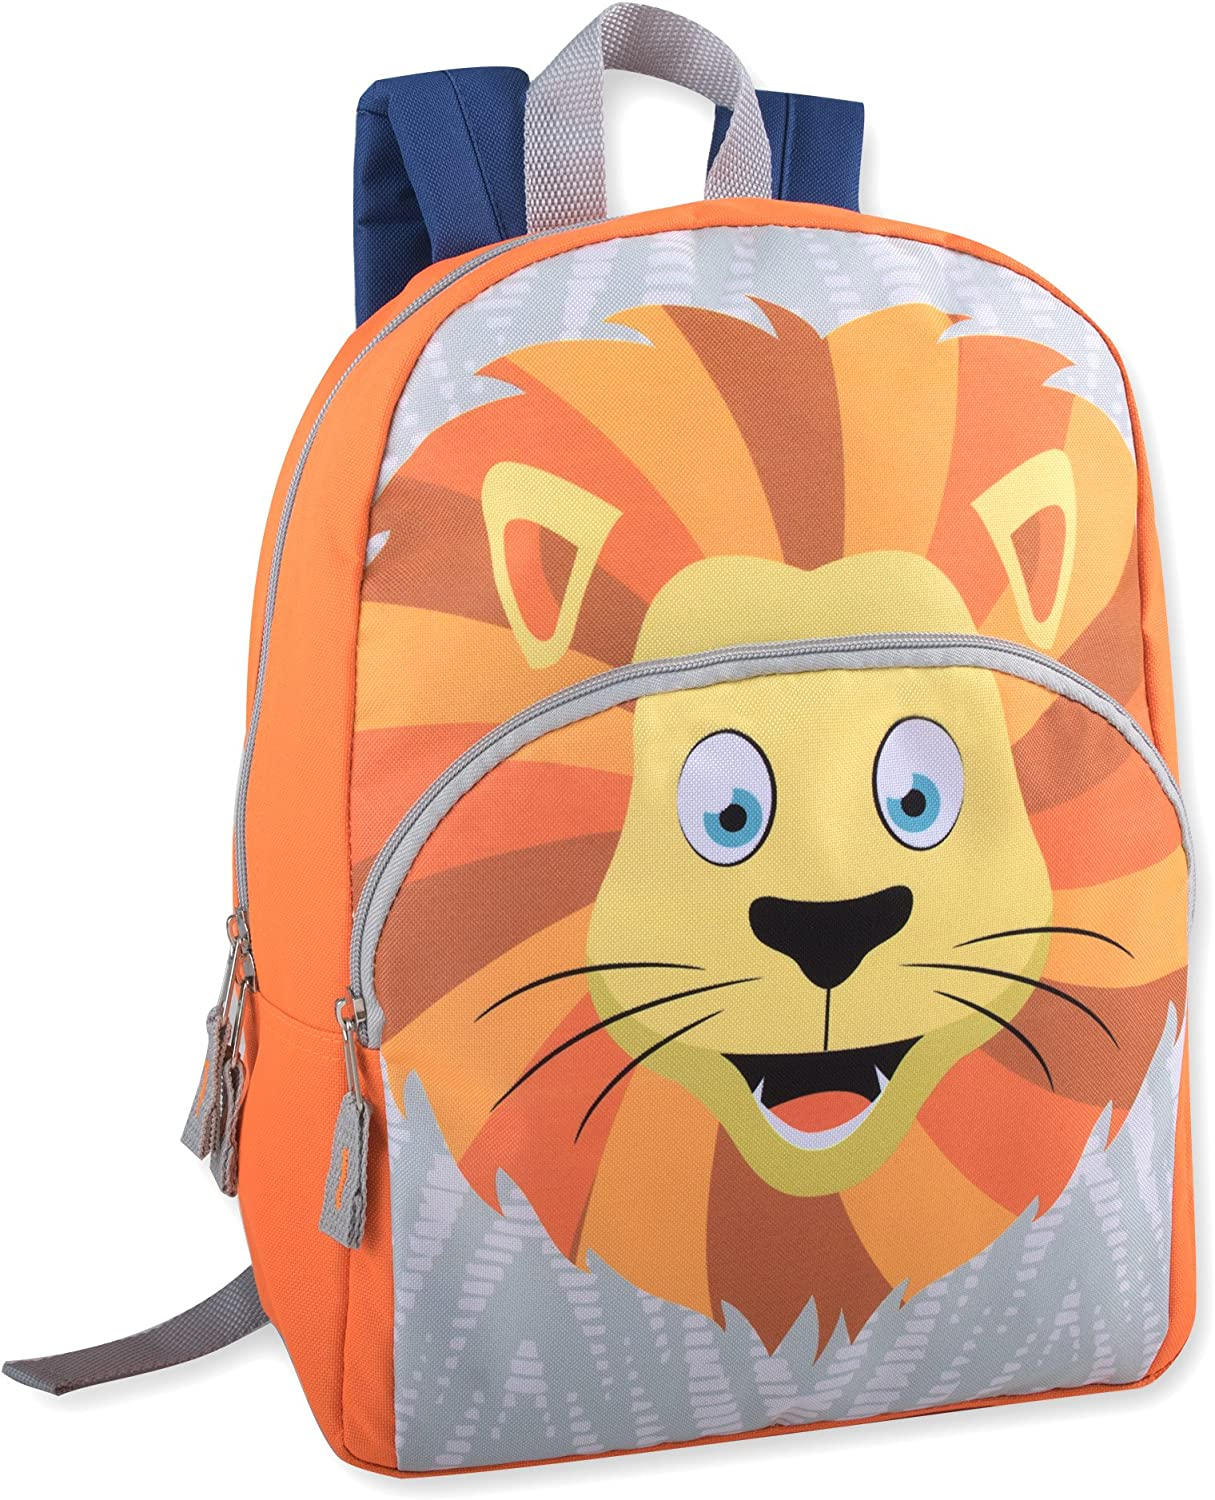 Animal Friends Critter and Creature Preschool, Kindergarten Backpacks for Boys and Girls With Reinforced Adjustable Straps